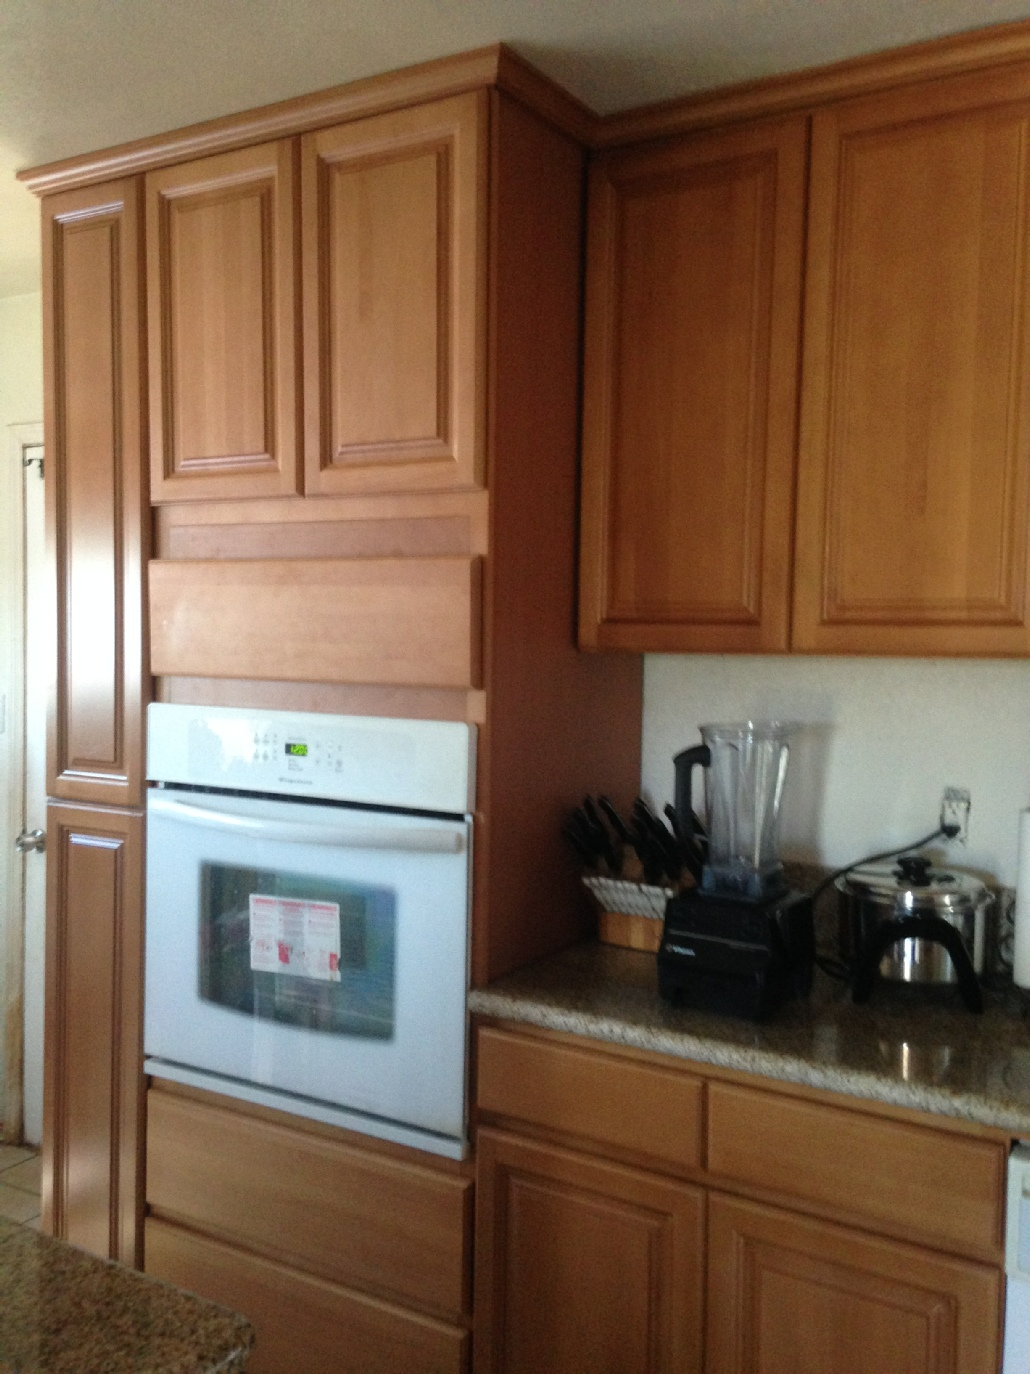 Unassembled Cabinets